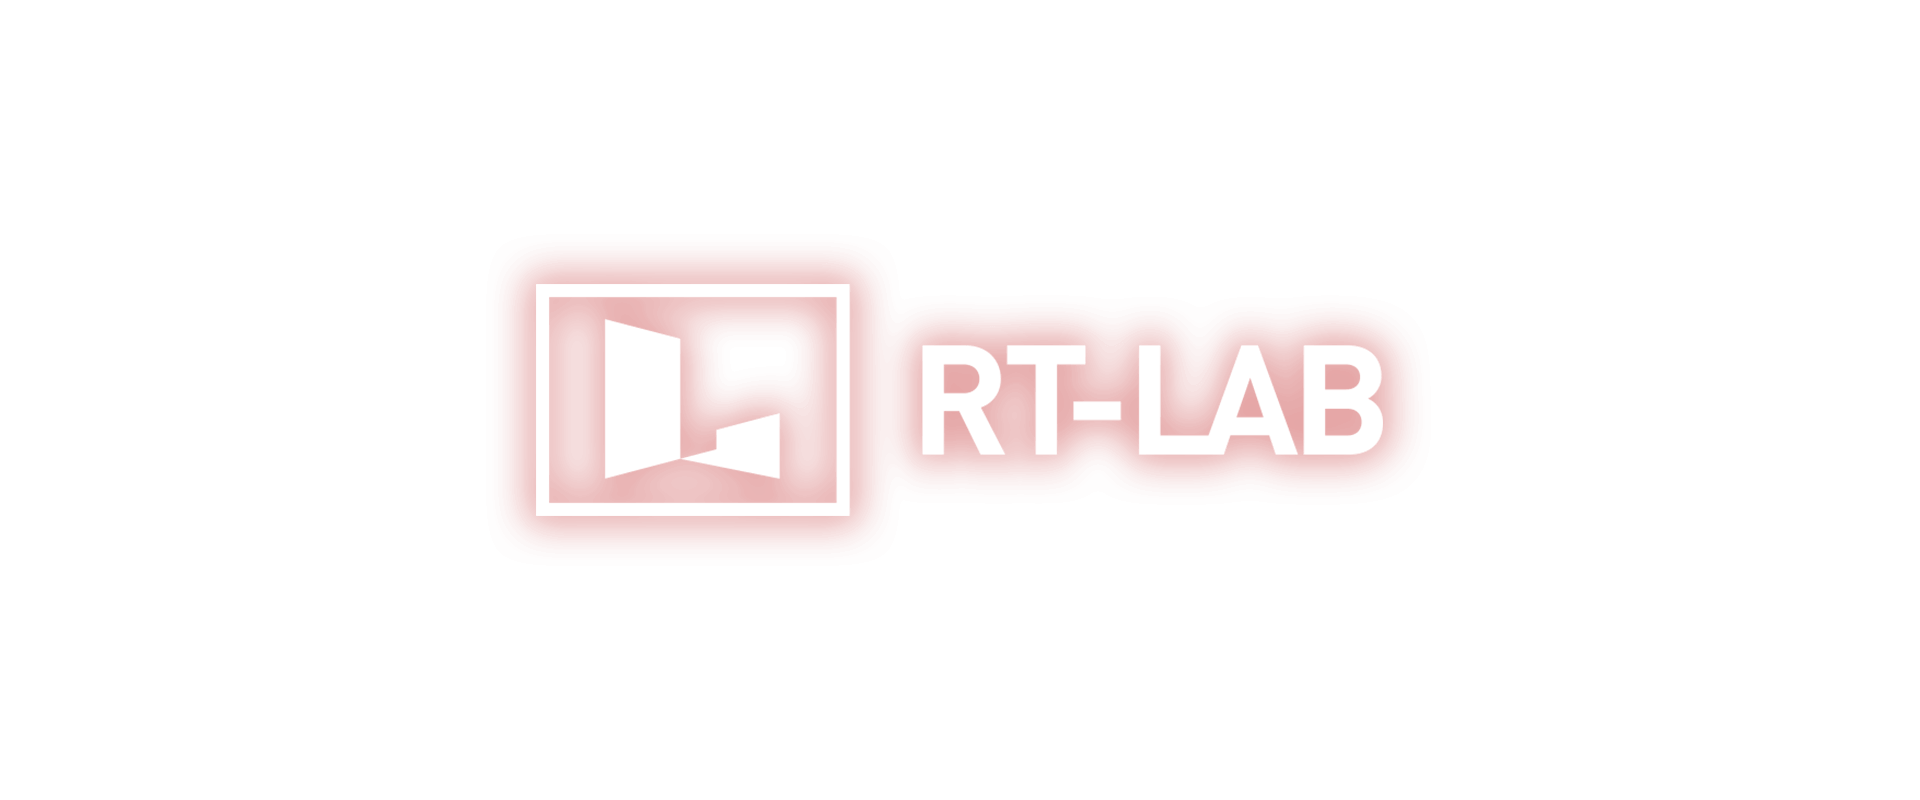 Software Simulation Real Time Applications Rt Labs Capture And Of Electrical Circuits The Actual